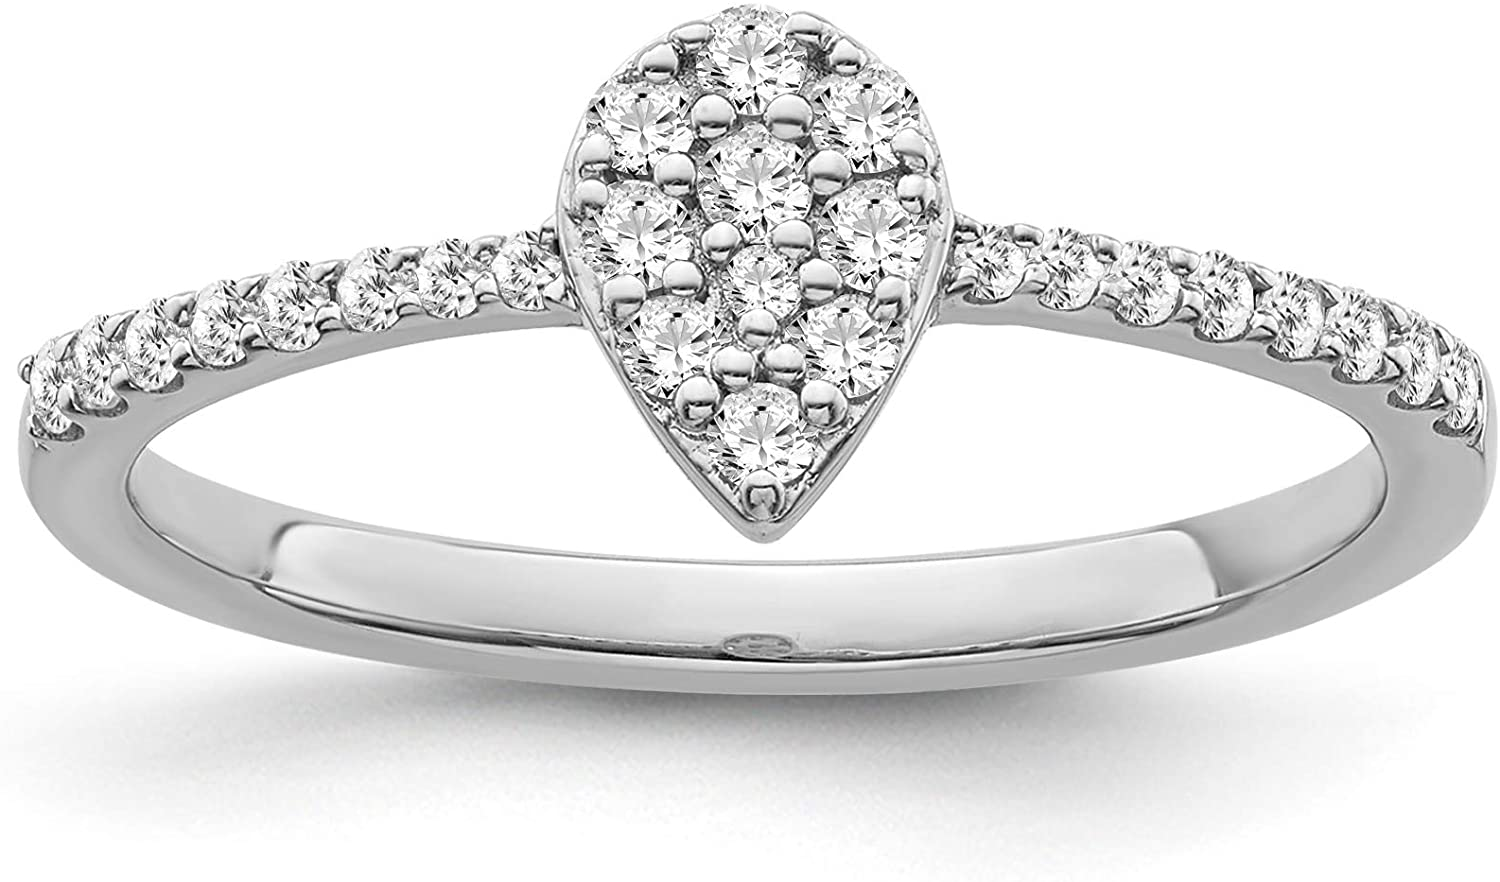 925 Sterling Silver 1/5 CTW Diamond Pear Shape Engagement Ring for Women